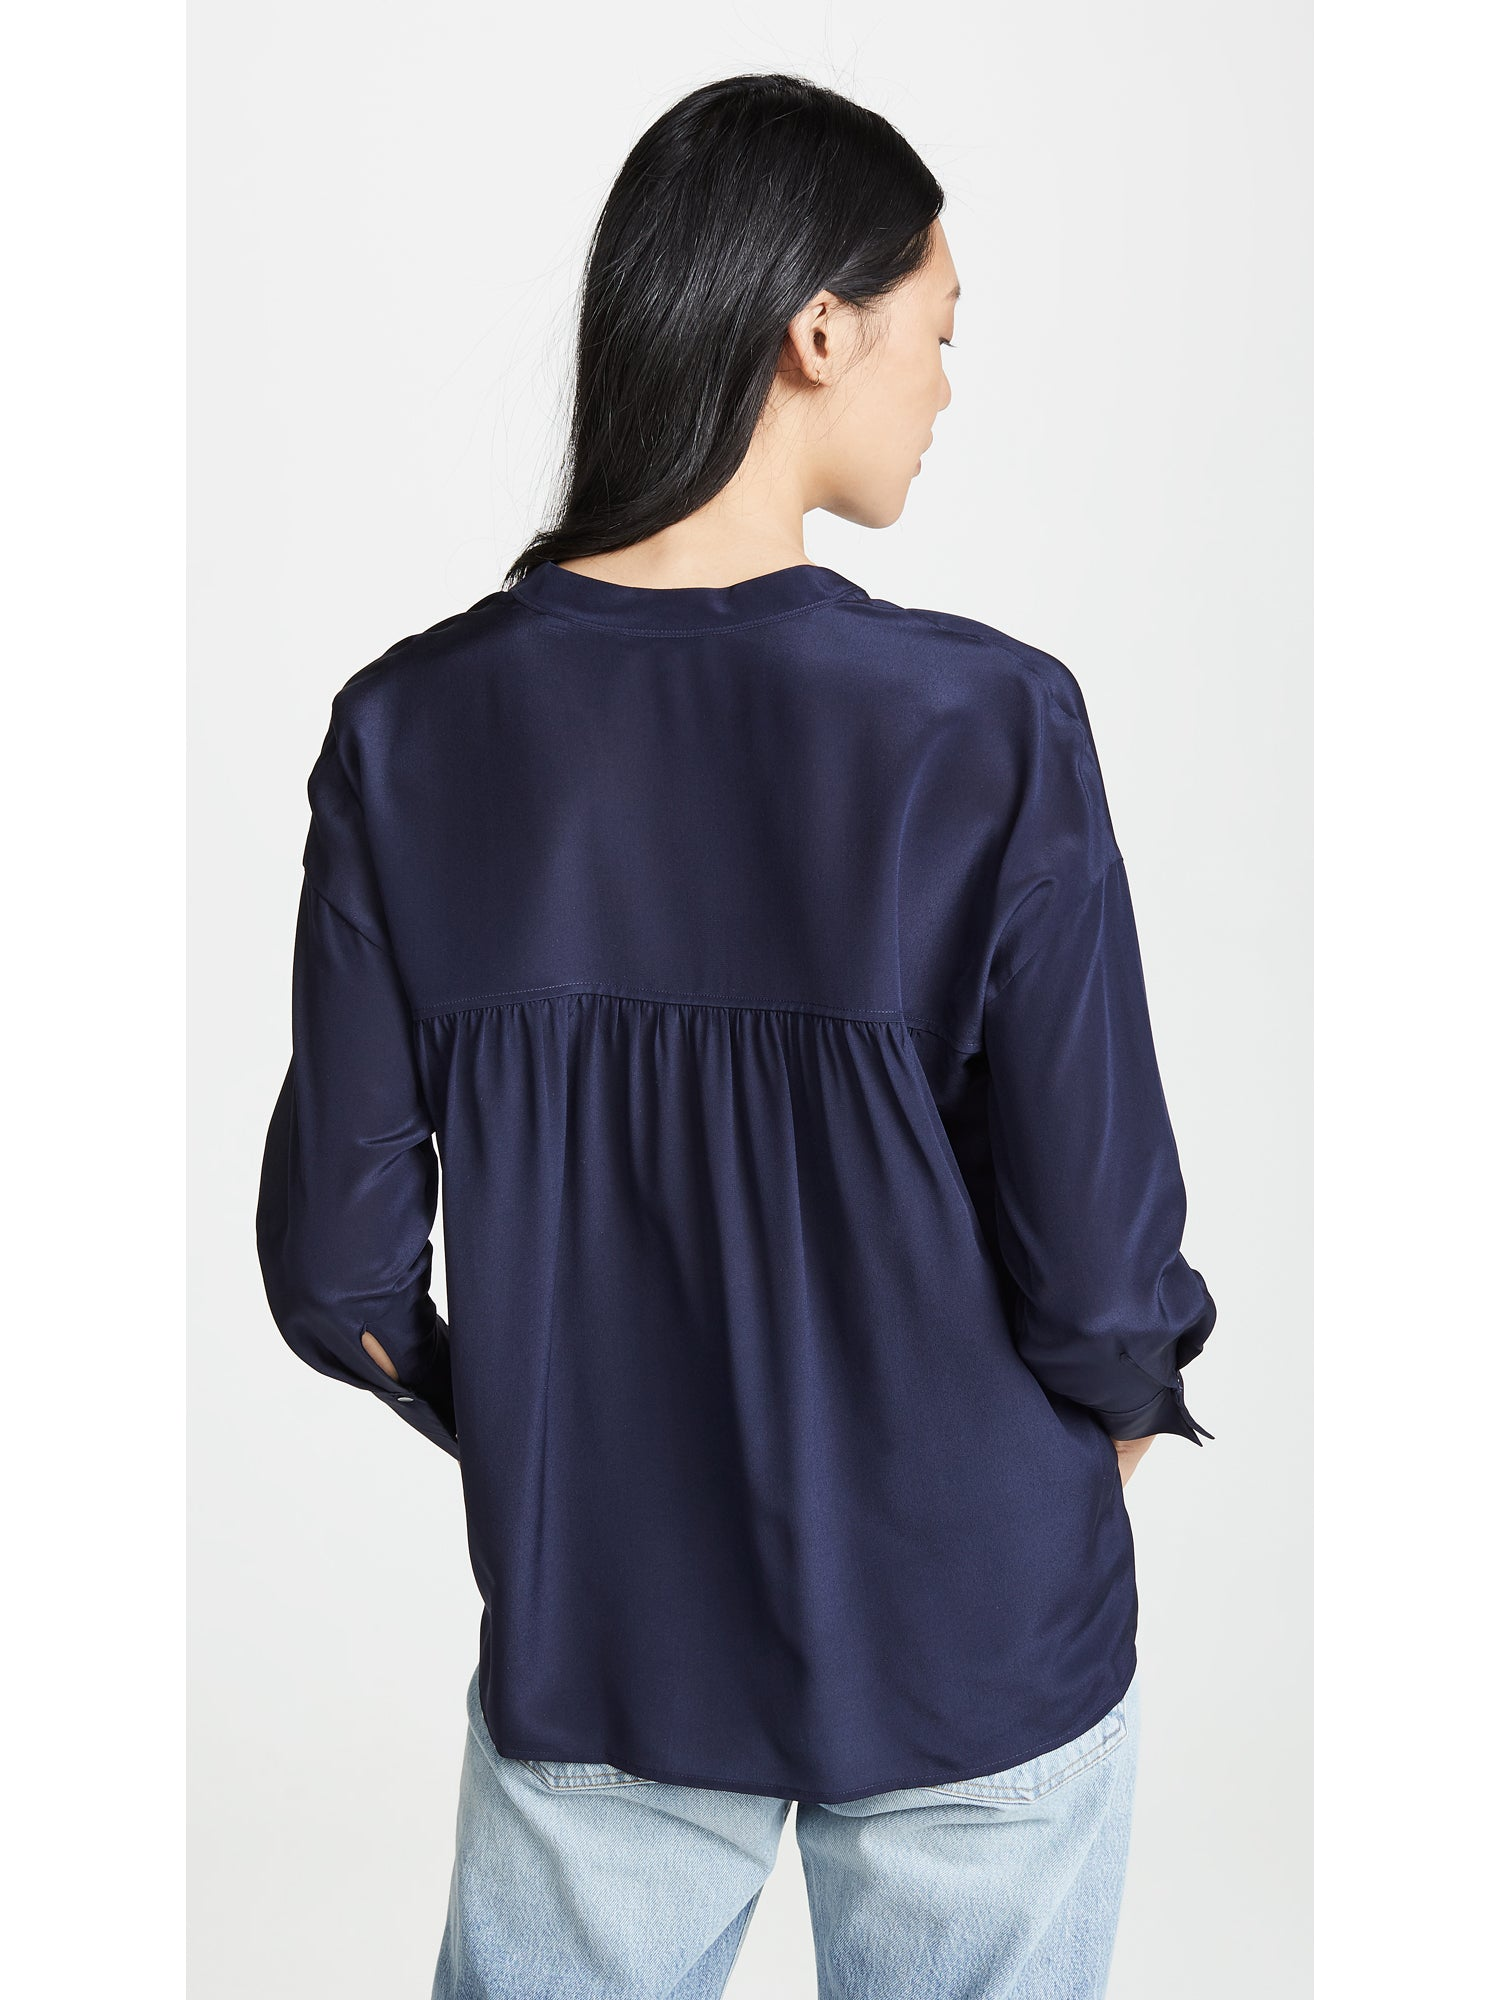 Vince Band Collar Silk Top - Marine Navy Blue | TILDEN